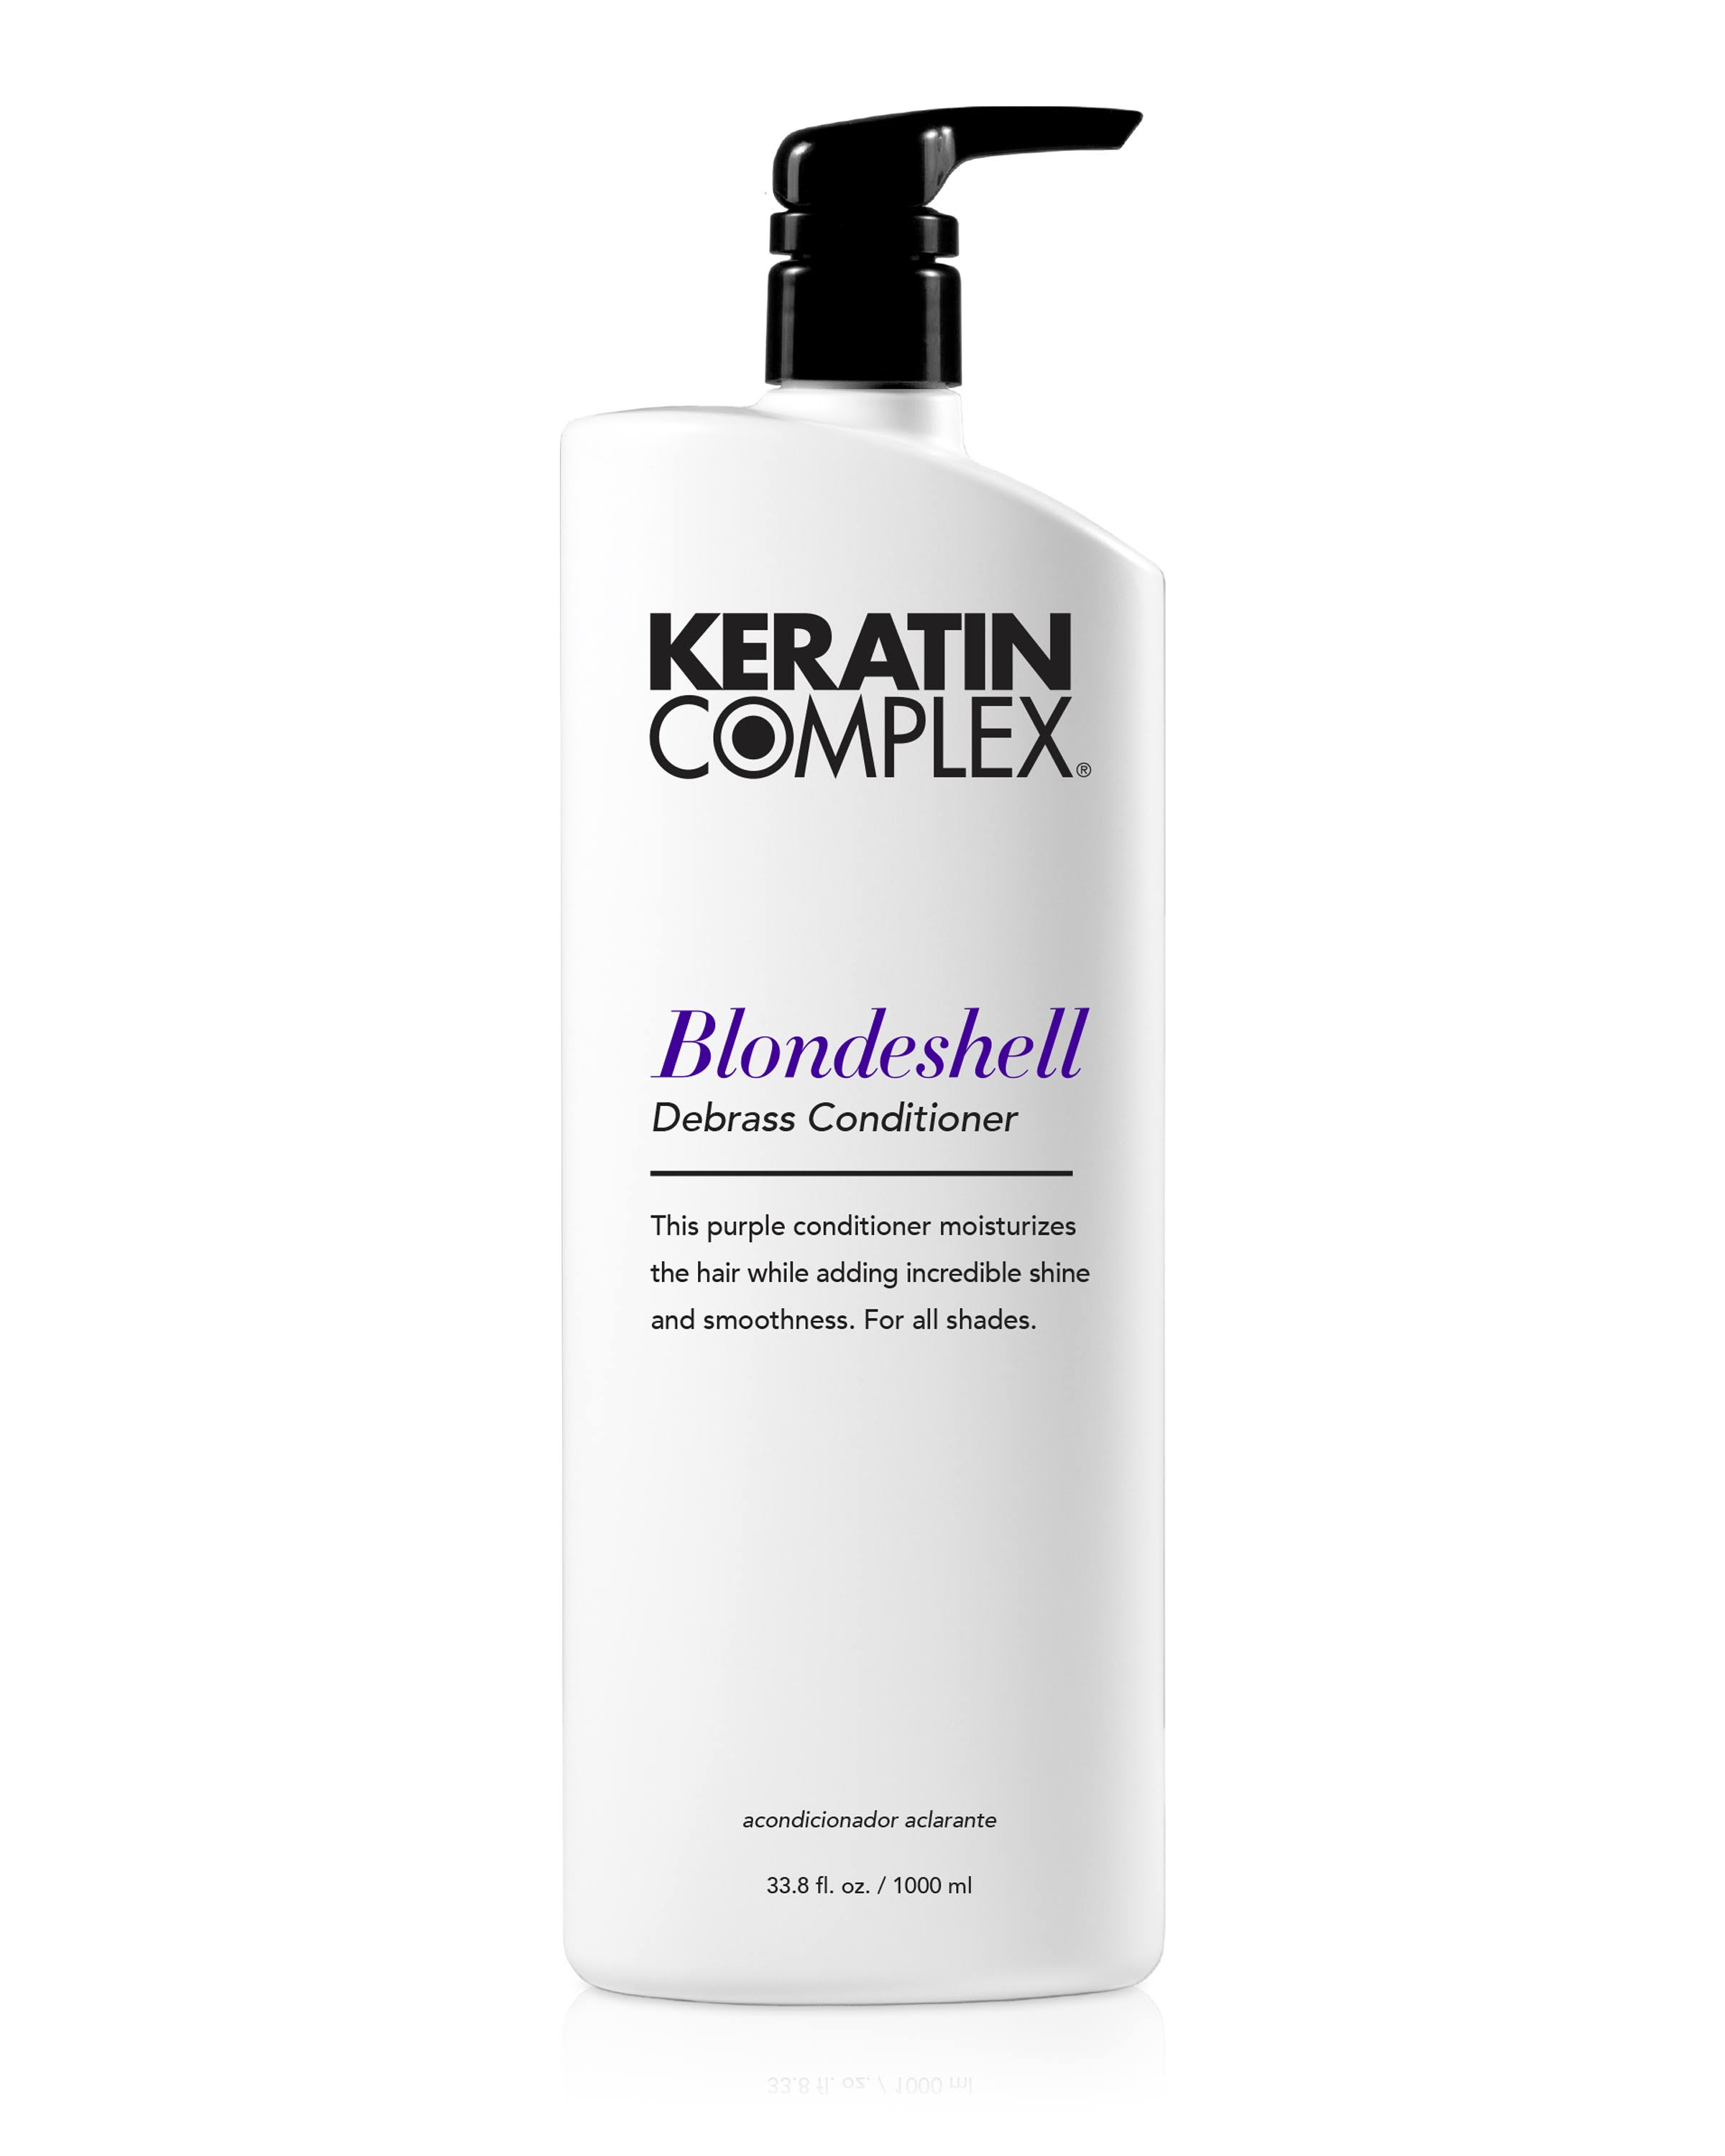 Keratin Complex Blondeshell Debrass Conditioner - 1000ml